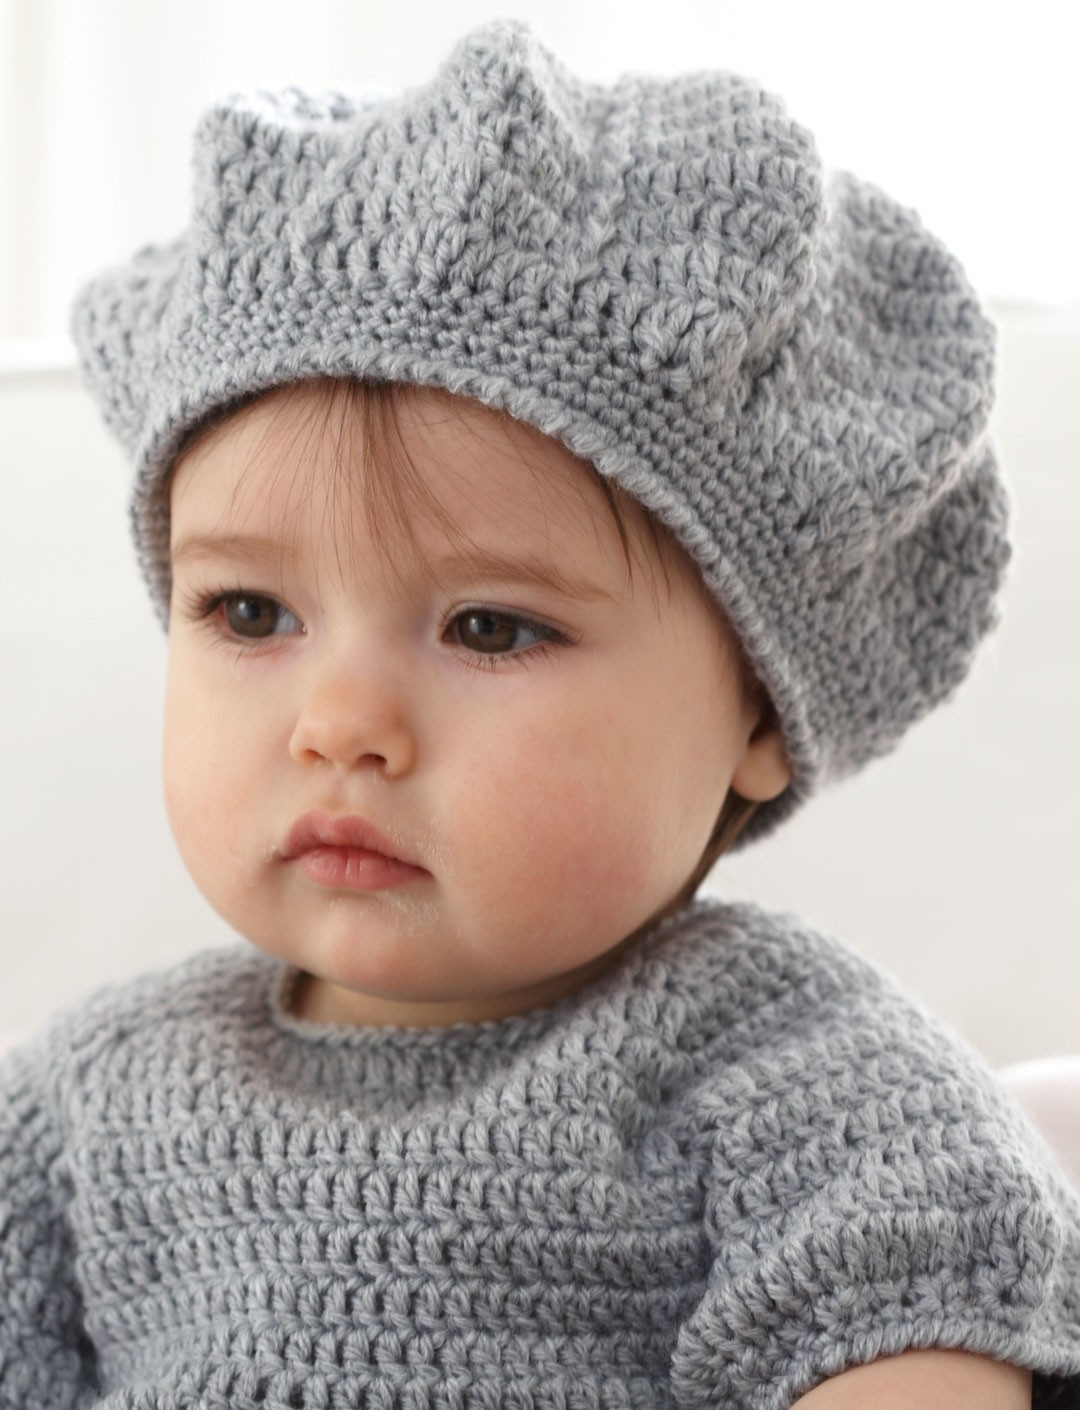 Free Knitting Pattern Toddler Beret : Patons I Heart My Dress, Crochet Pattern Yarnspirations